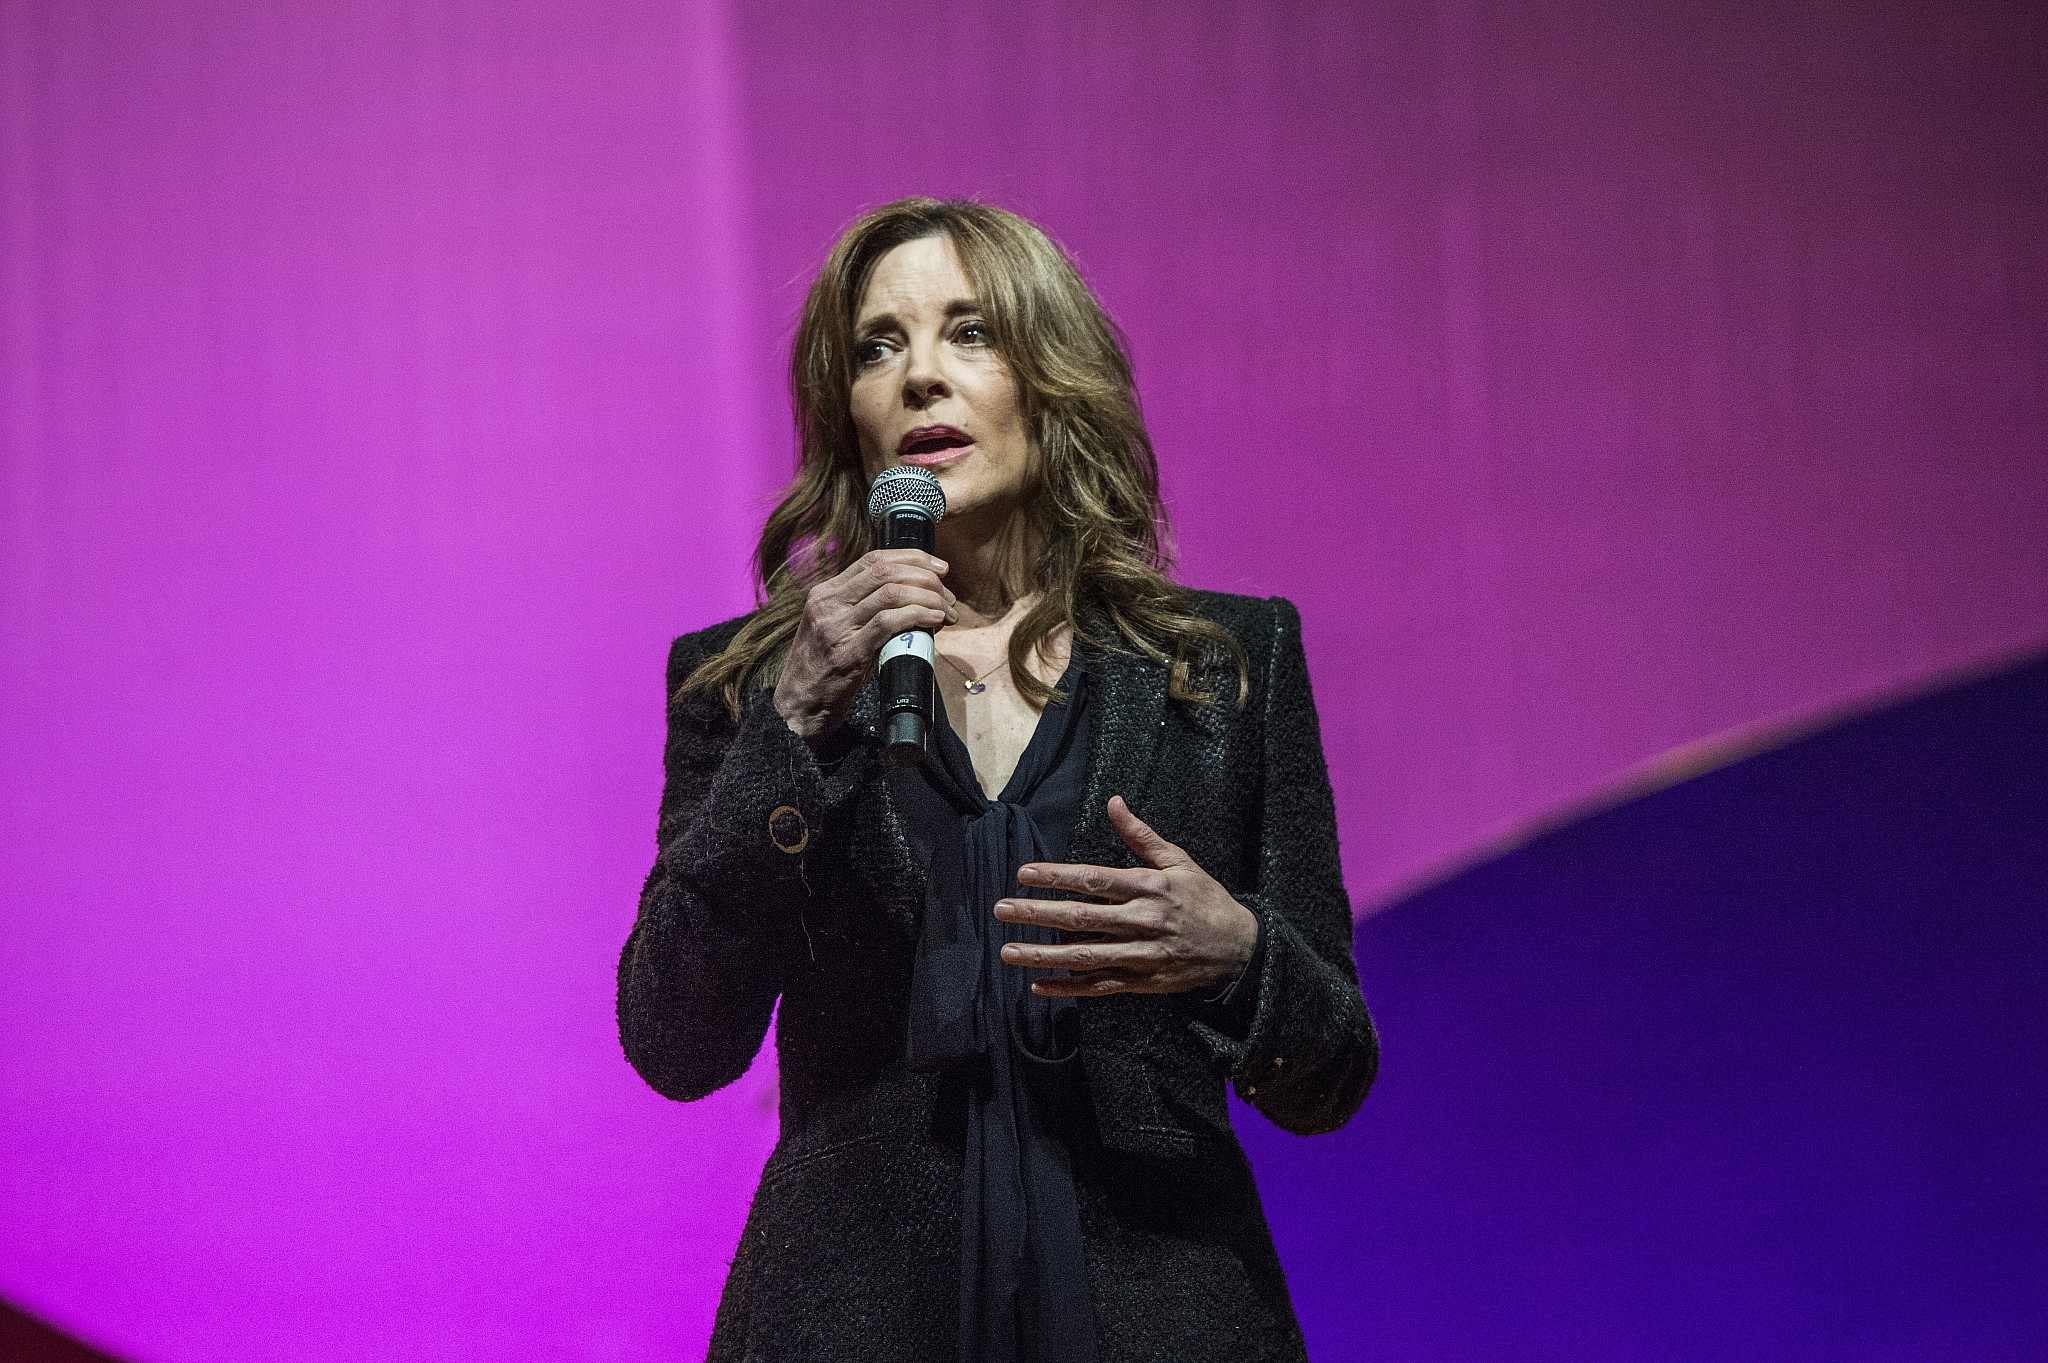 Broadway Themed Food Ideas 2020 Jewish New Age guru stakes her claim for 2020 presidential run